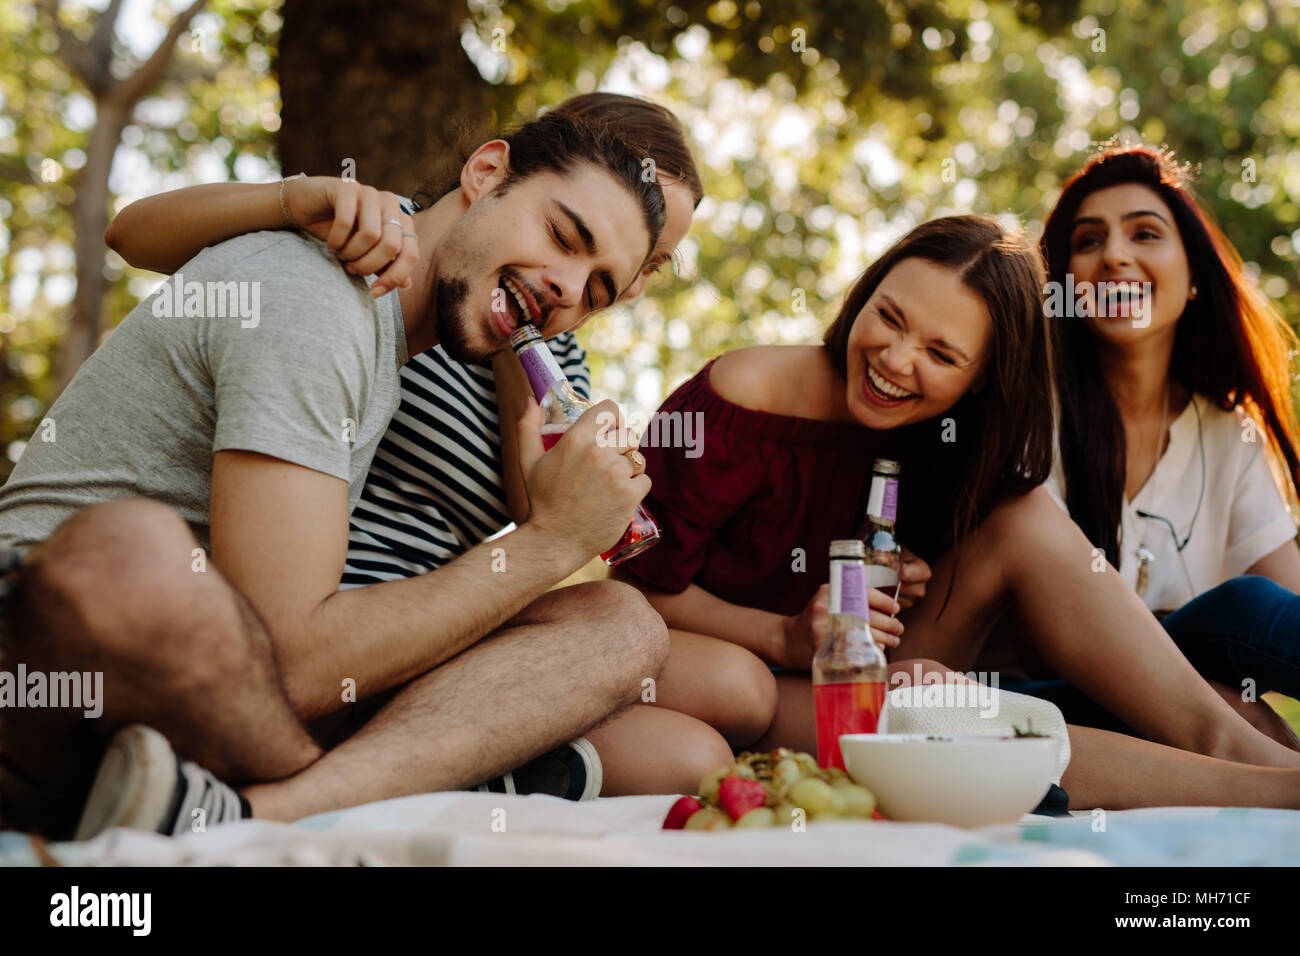 Man opening a bottle with his teeth and women sitting by smiling. Group of friends enjoying with drinks at picnic. - Stock Image